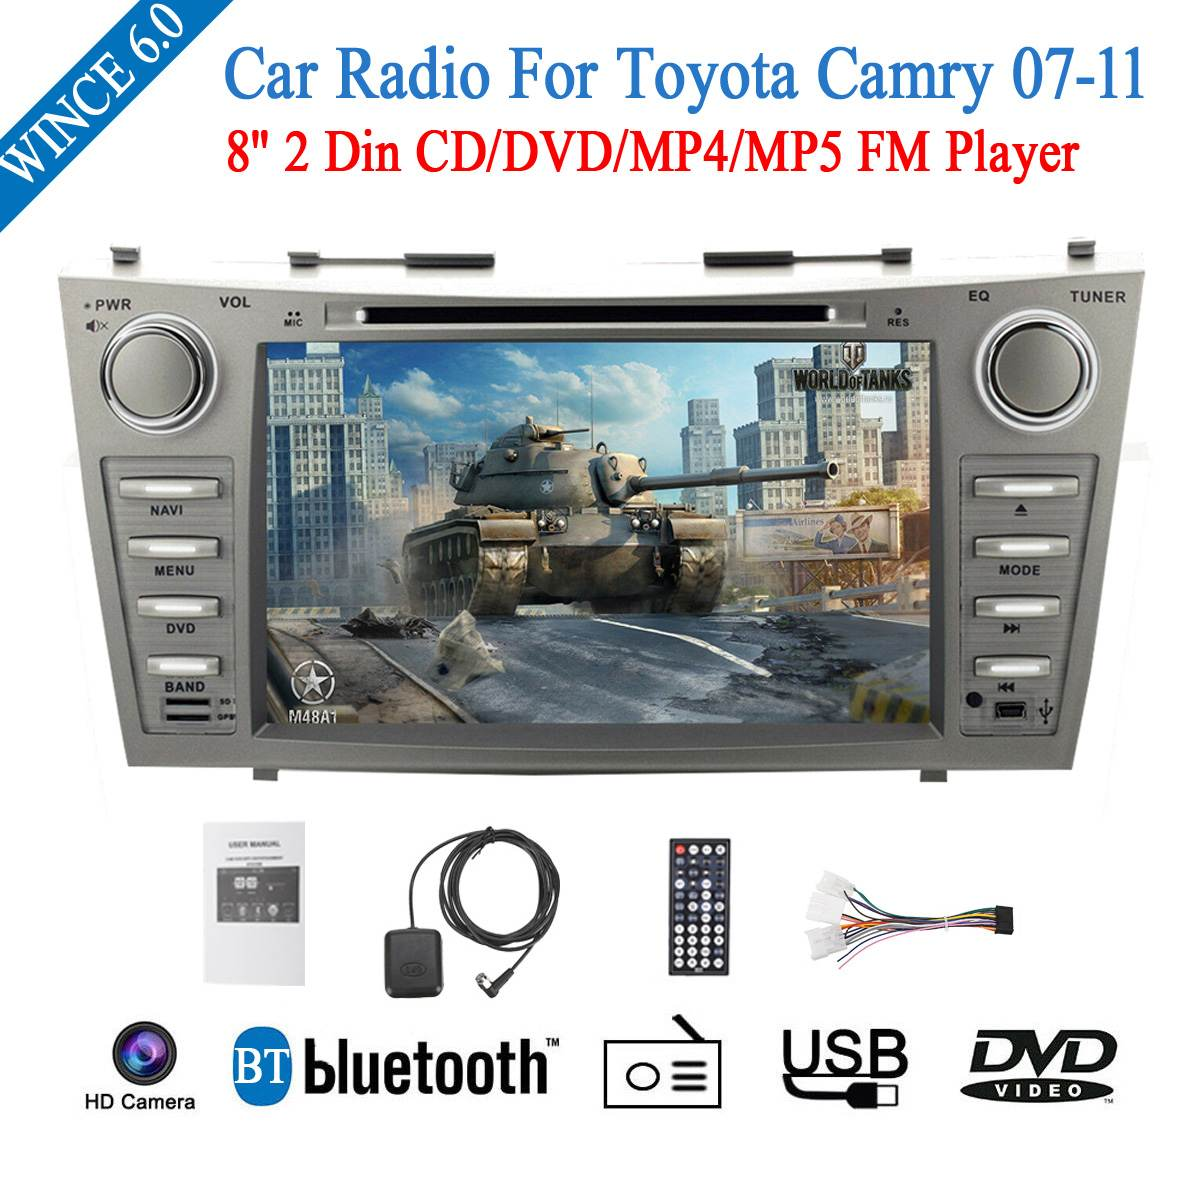 2 Din 8 WINCE 6.0 Car DVD GPS Navigation For Toyota Camry 2007 2008 2009 2010 2011 Head Unit Car Stereo radio CD/DVD/MP4/MP52 Din 8 WINCE 6.0 Car DVD GPS Navigation For Toyota Camry 2007 2008 2009 2010 2011 Head Unit Car Stereo radio CD/DVD/MP4/MP5